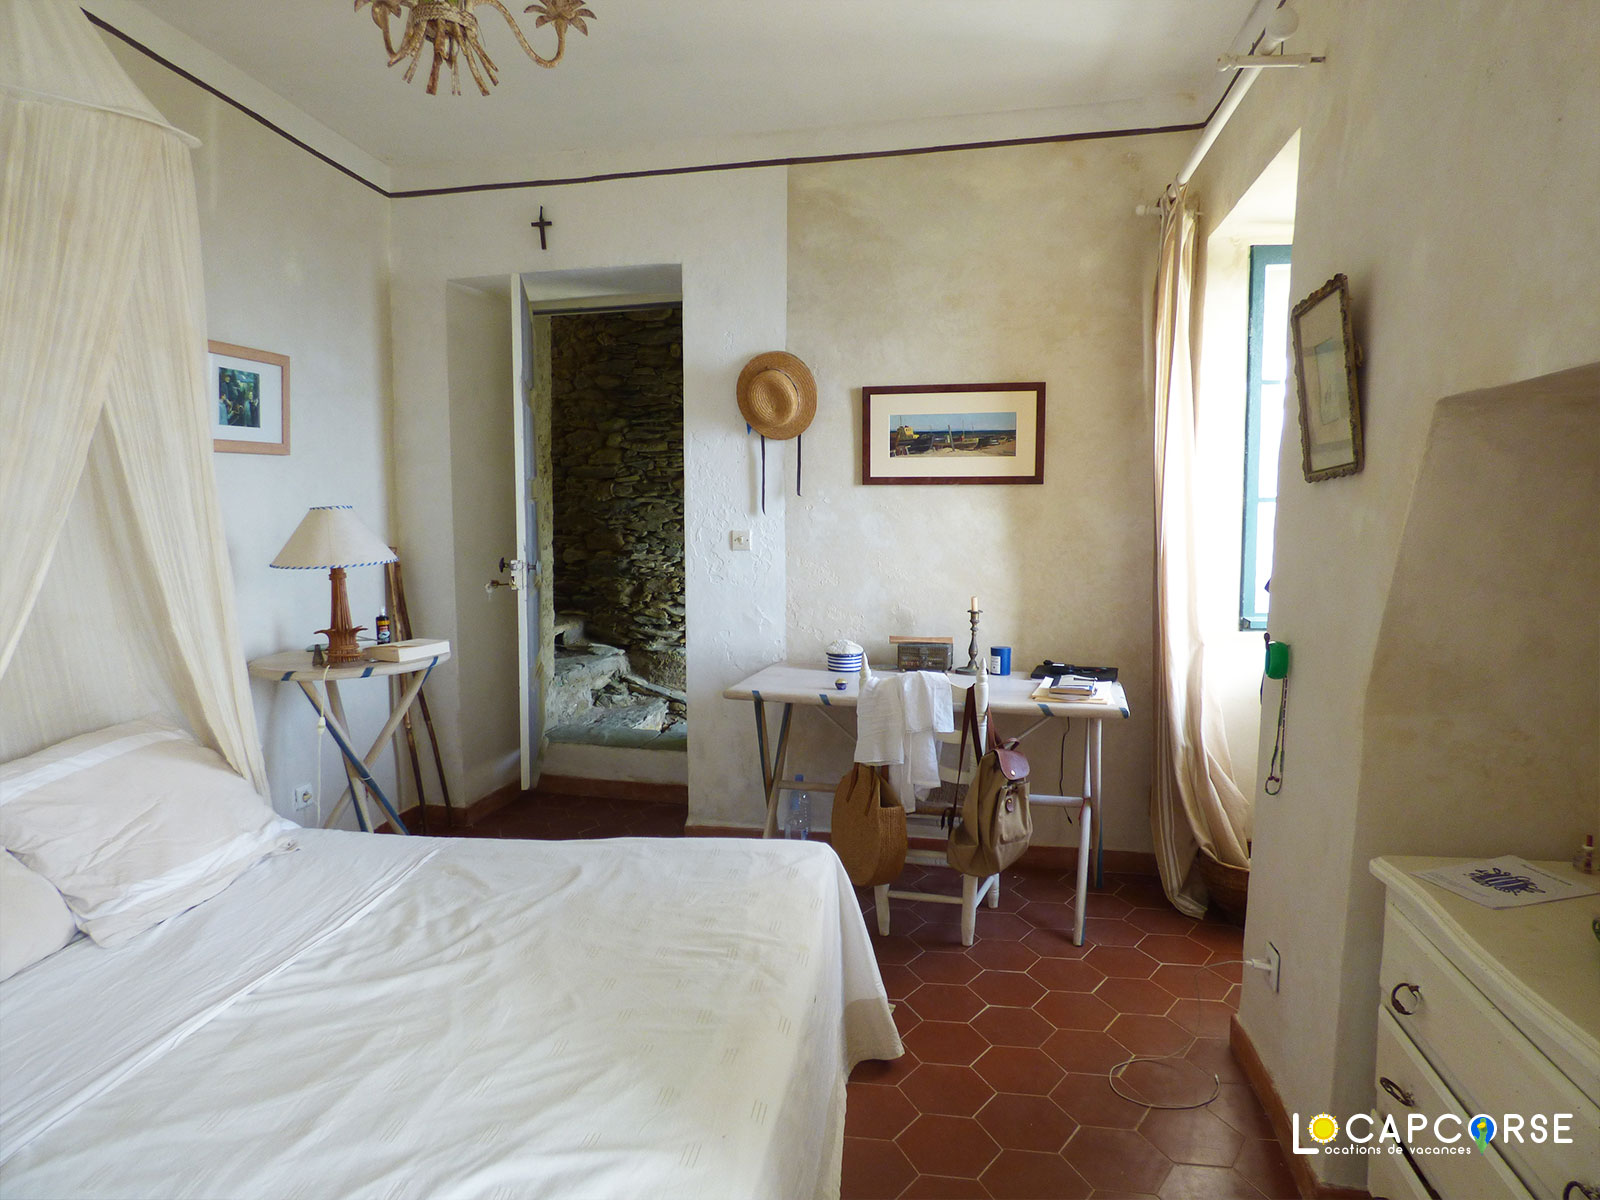 Locations Cap Corse - The bedroom of the little house